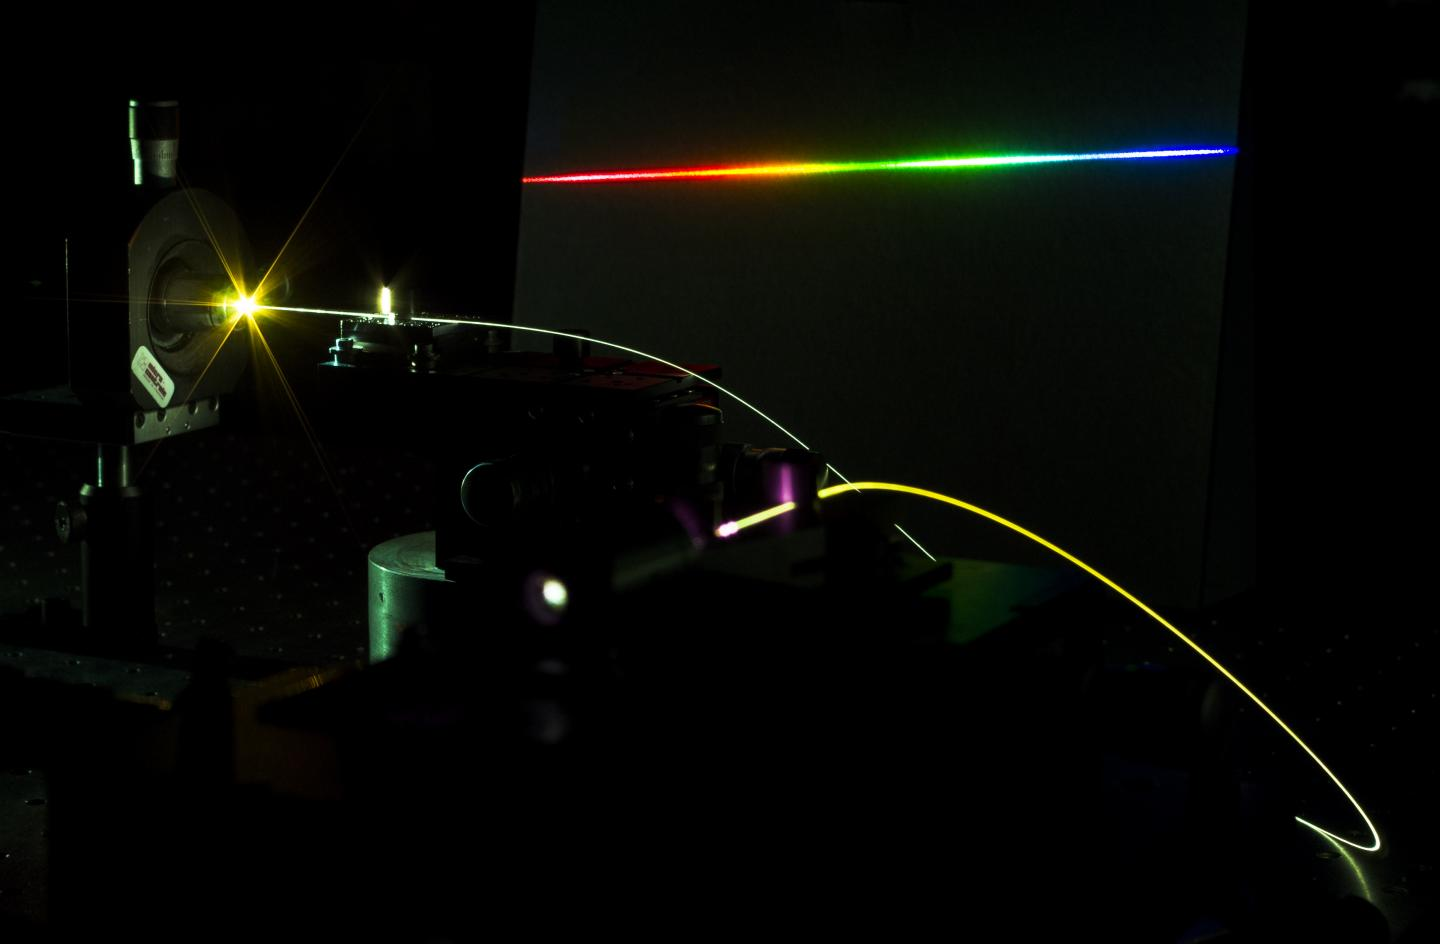 An ultrashort pulse is sent into an optical fiber and produces new frequency components via intense light-matter interactions. INRS and University of Sussex.